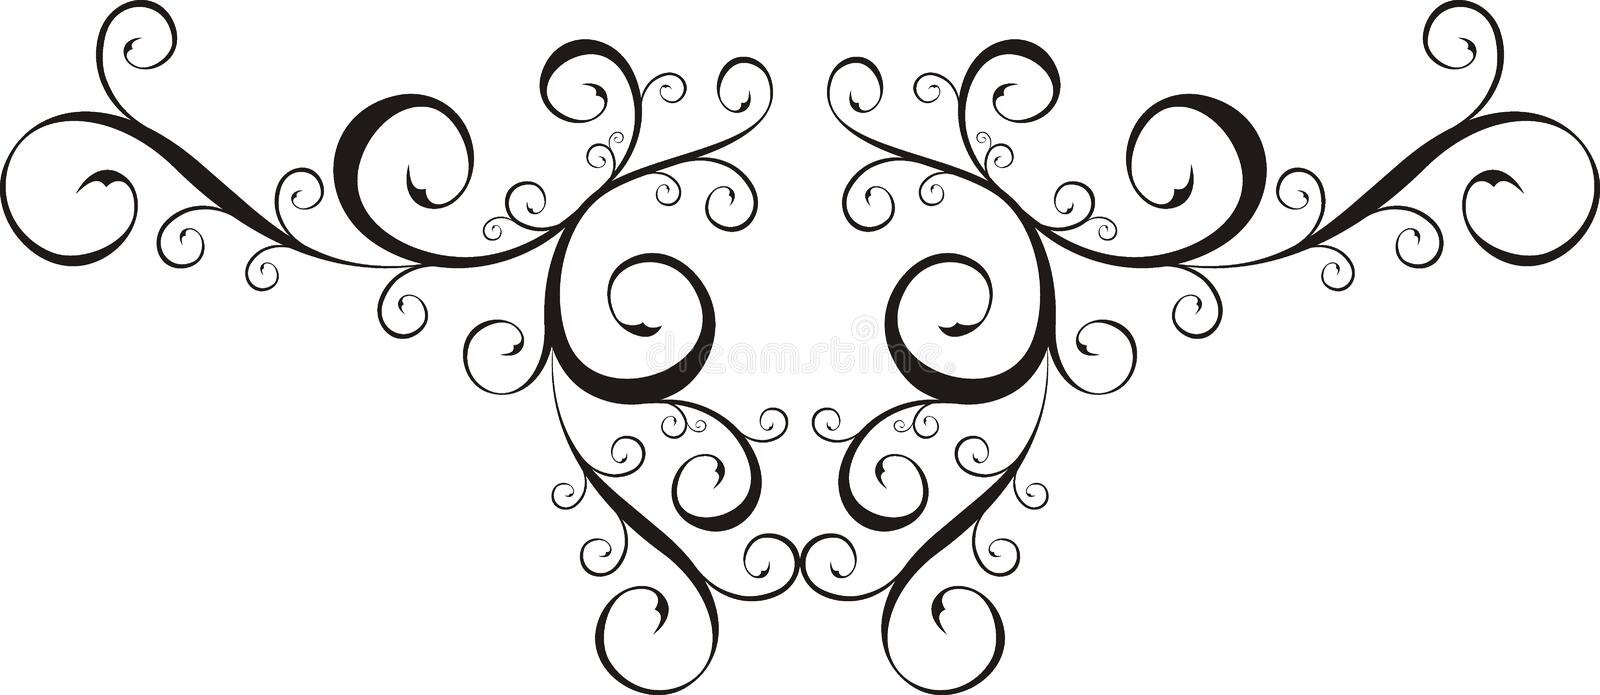 Design element. Ornamental frame with floral ornaments, very easy to edit stock illustration